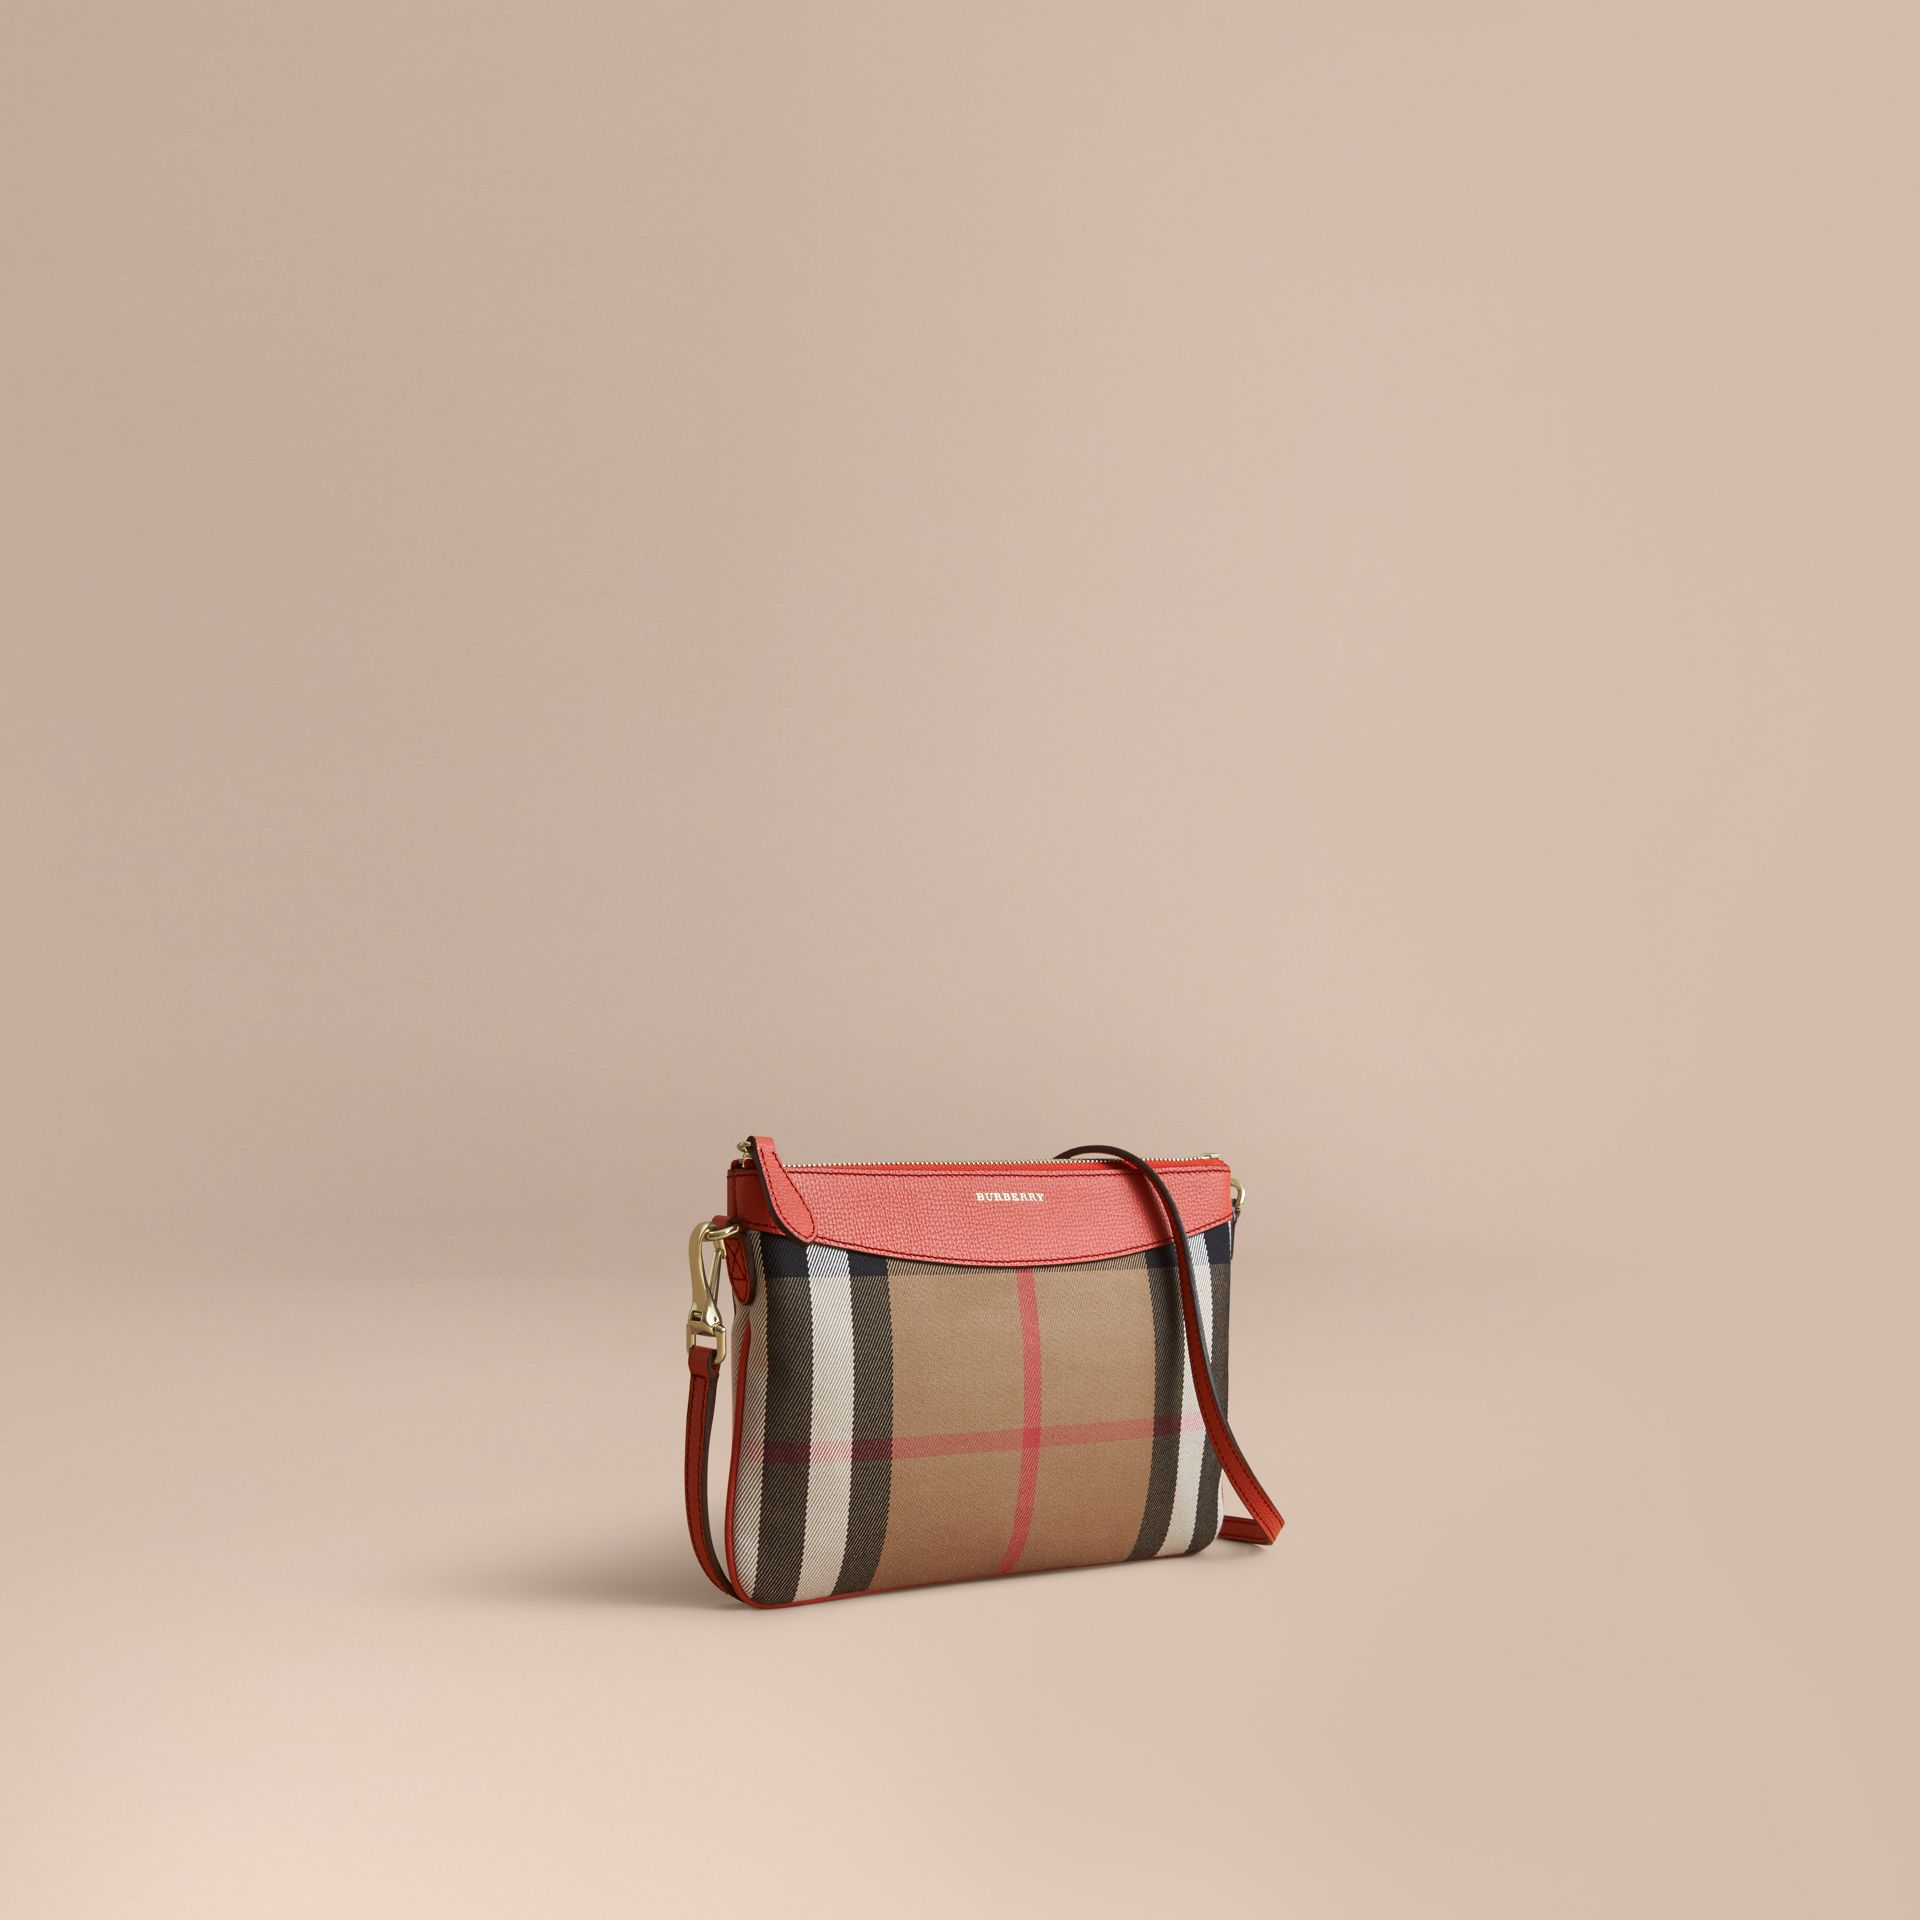 House Check and Leather Clutch Bag in Cinnamon Red - Women | Burberry - gallery image 1